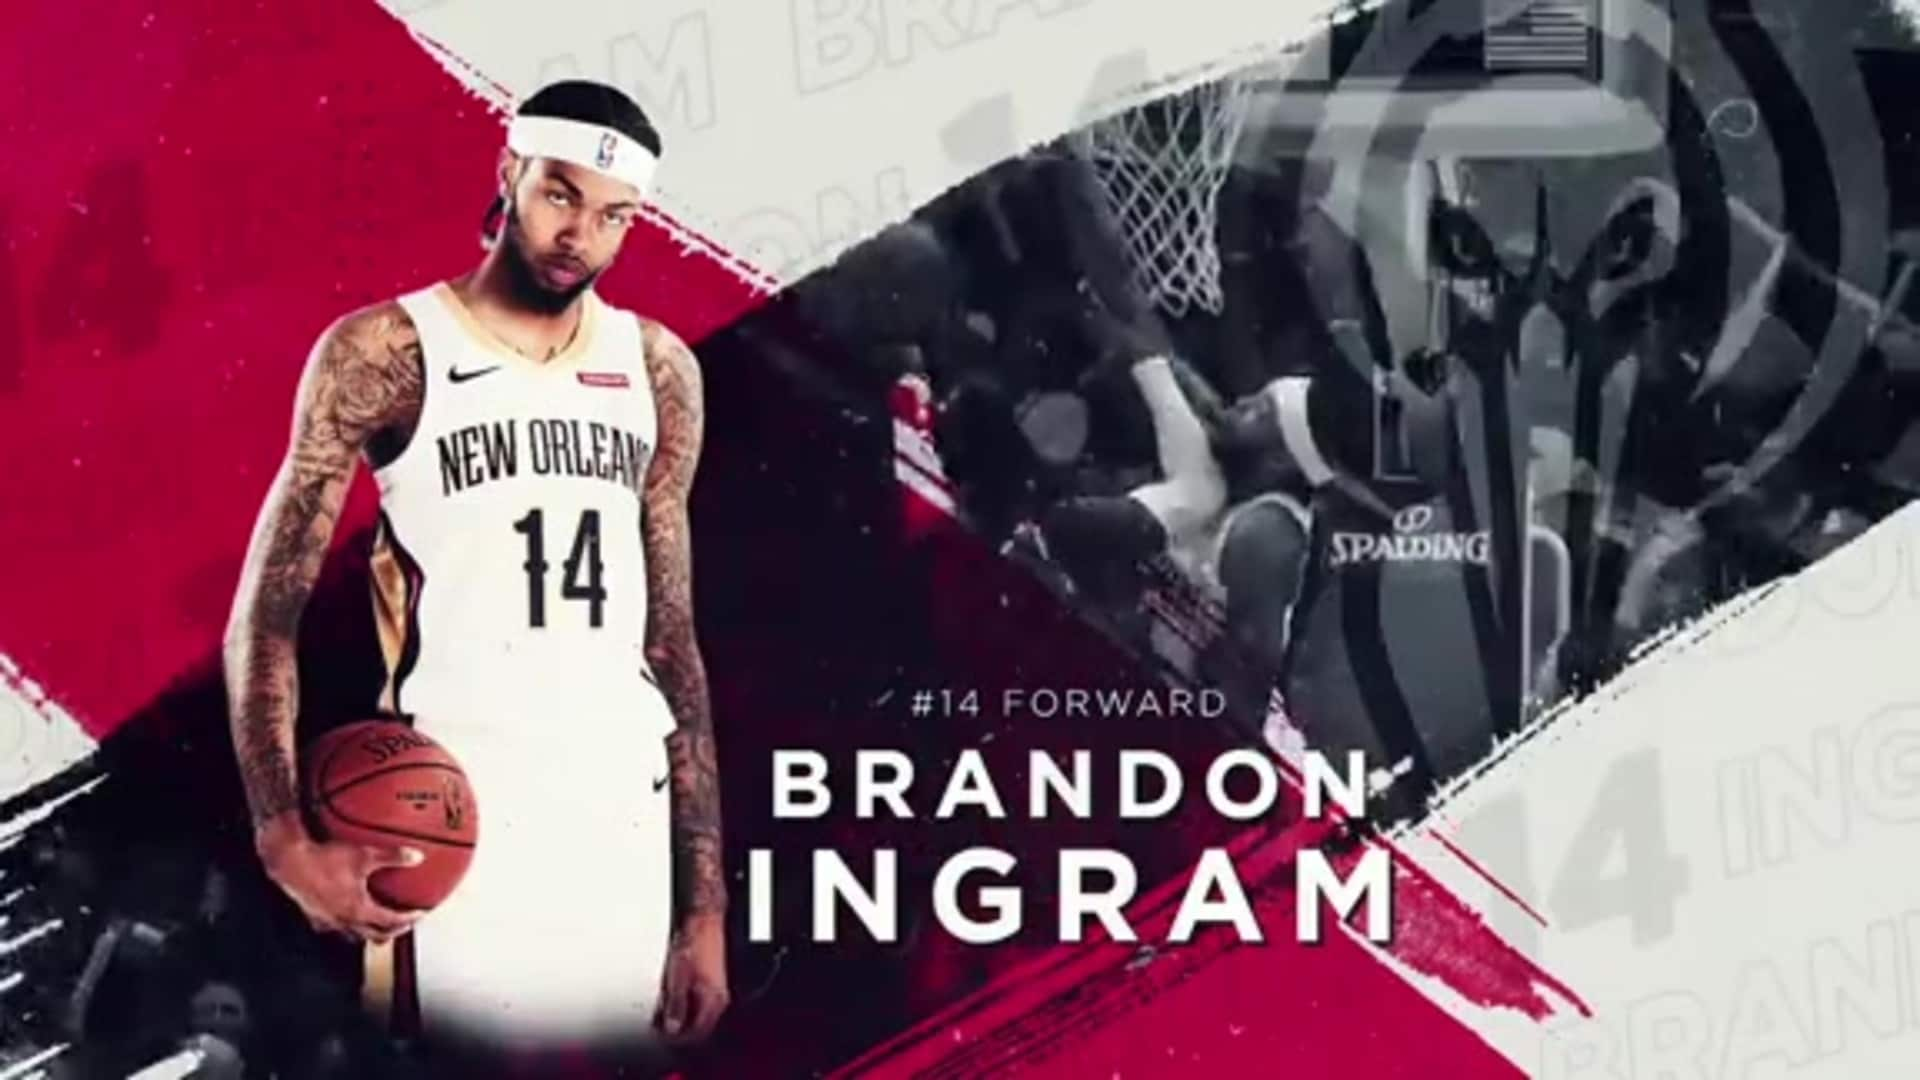 Brandon Ingram HYPE, signs contract extension with the New Orleans Pelicans